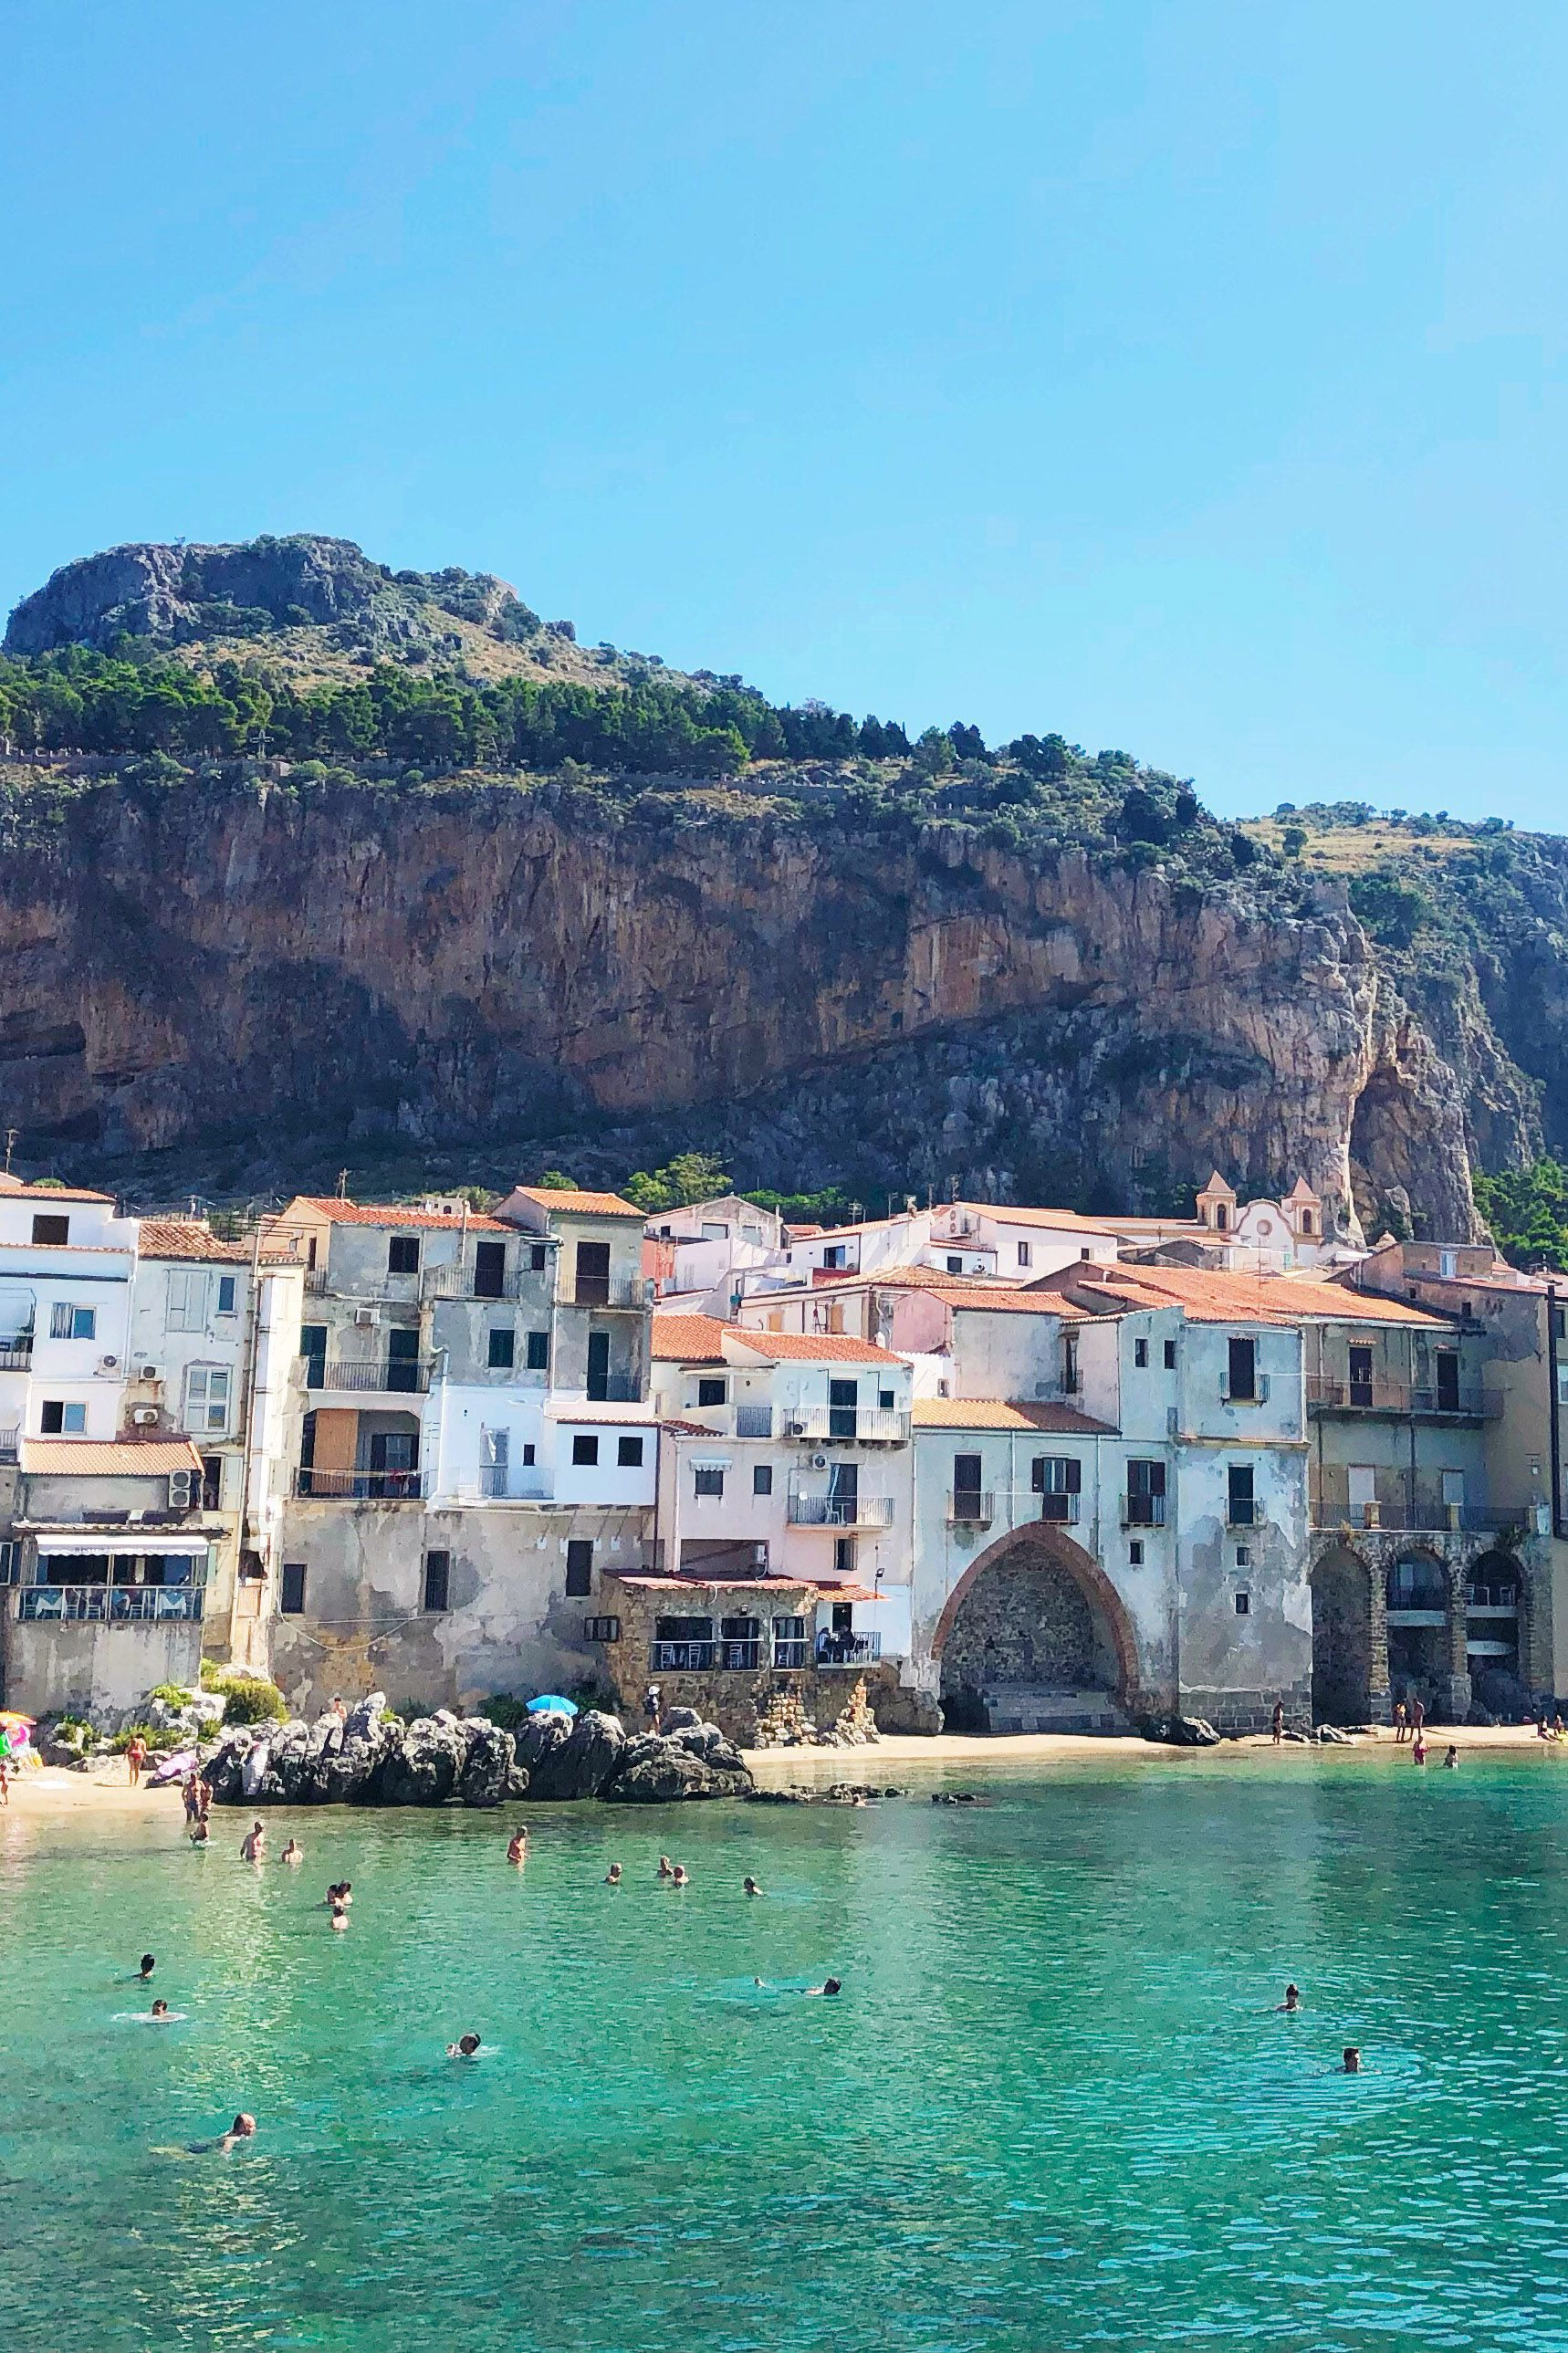 On a recent trip to Sicily, we discovered the beautiful seaside town of Céfalu. Pretty as a postcard, the colorful houses on the cliff next to the crystal blue water were breathtaking! Follow our Awol blog to get more inspiring travel photography and discover the travel stories behind our travel inspired designer collections. #cefalu #sicilytravel #beautifultravelphotography #bestbeaches #bestravelblog #bestbeaches #bestofsicily #travelinspired #creativeswhotravel #bestsicilytravels #seasidetown